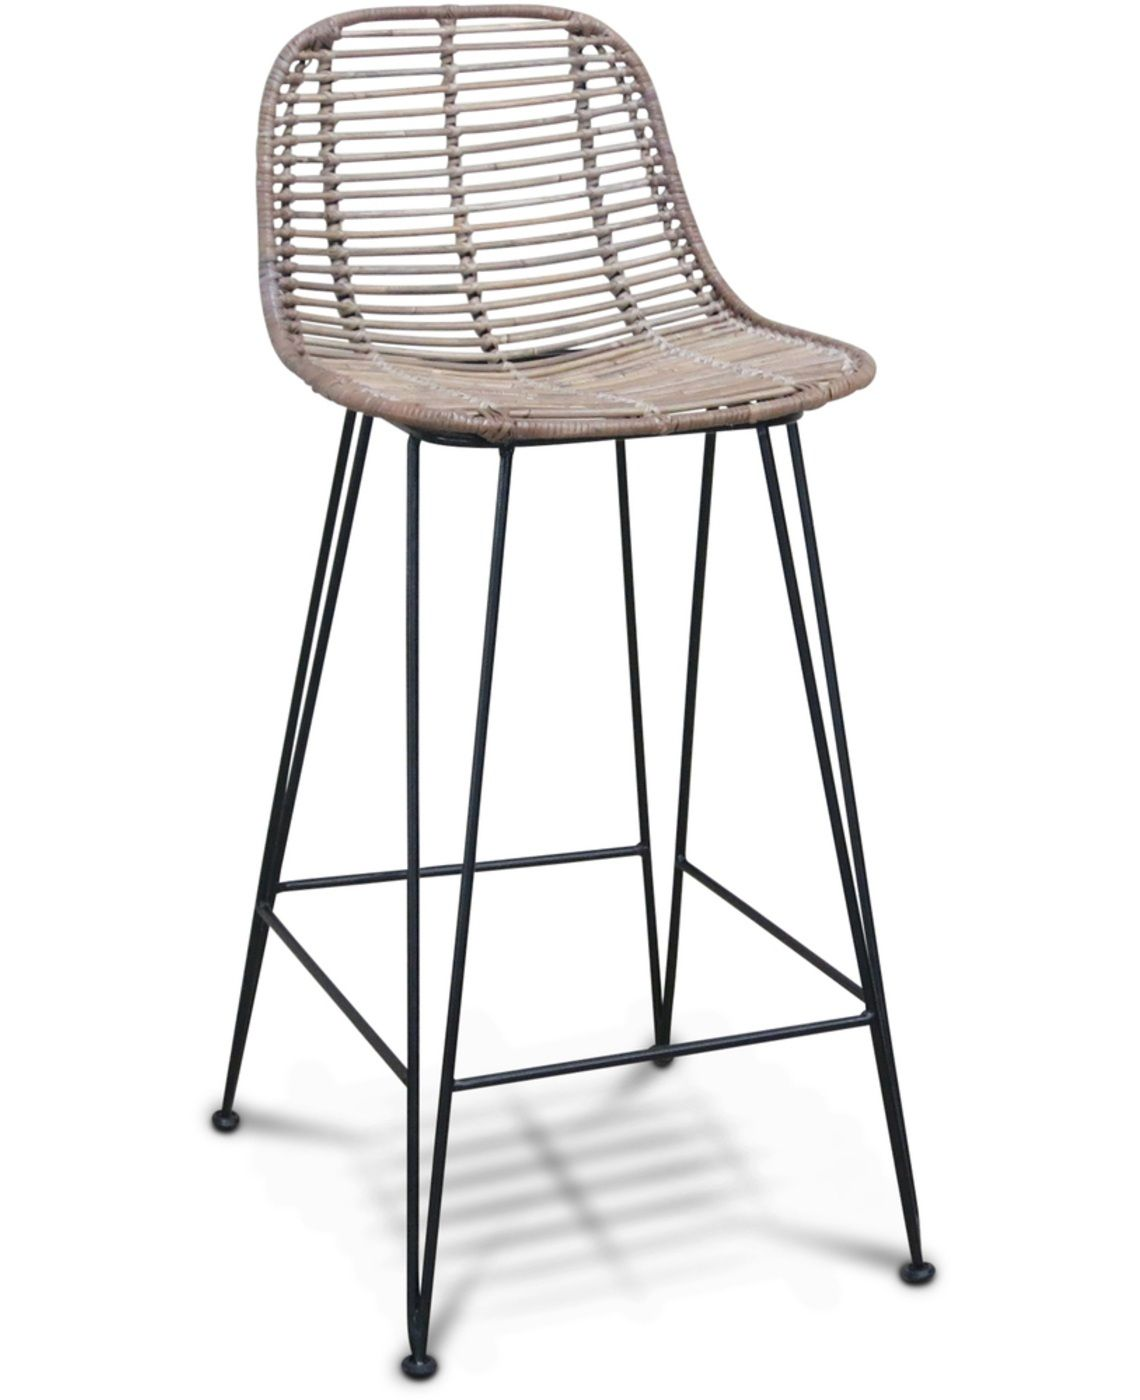 Kitchen Stools New Zealand: An Urban Coastal Style Barstool Also Available In A Chair